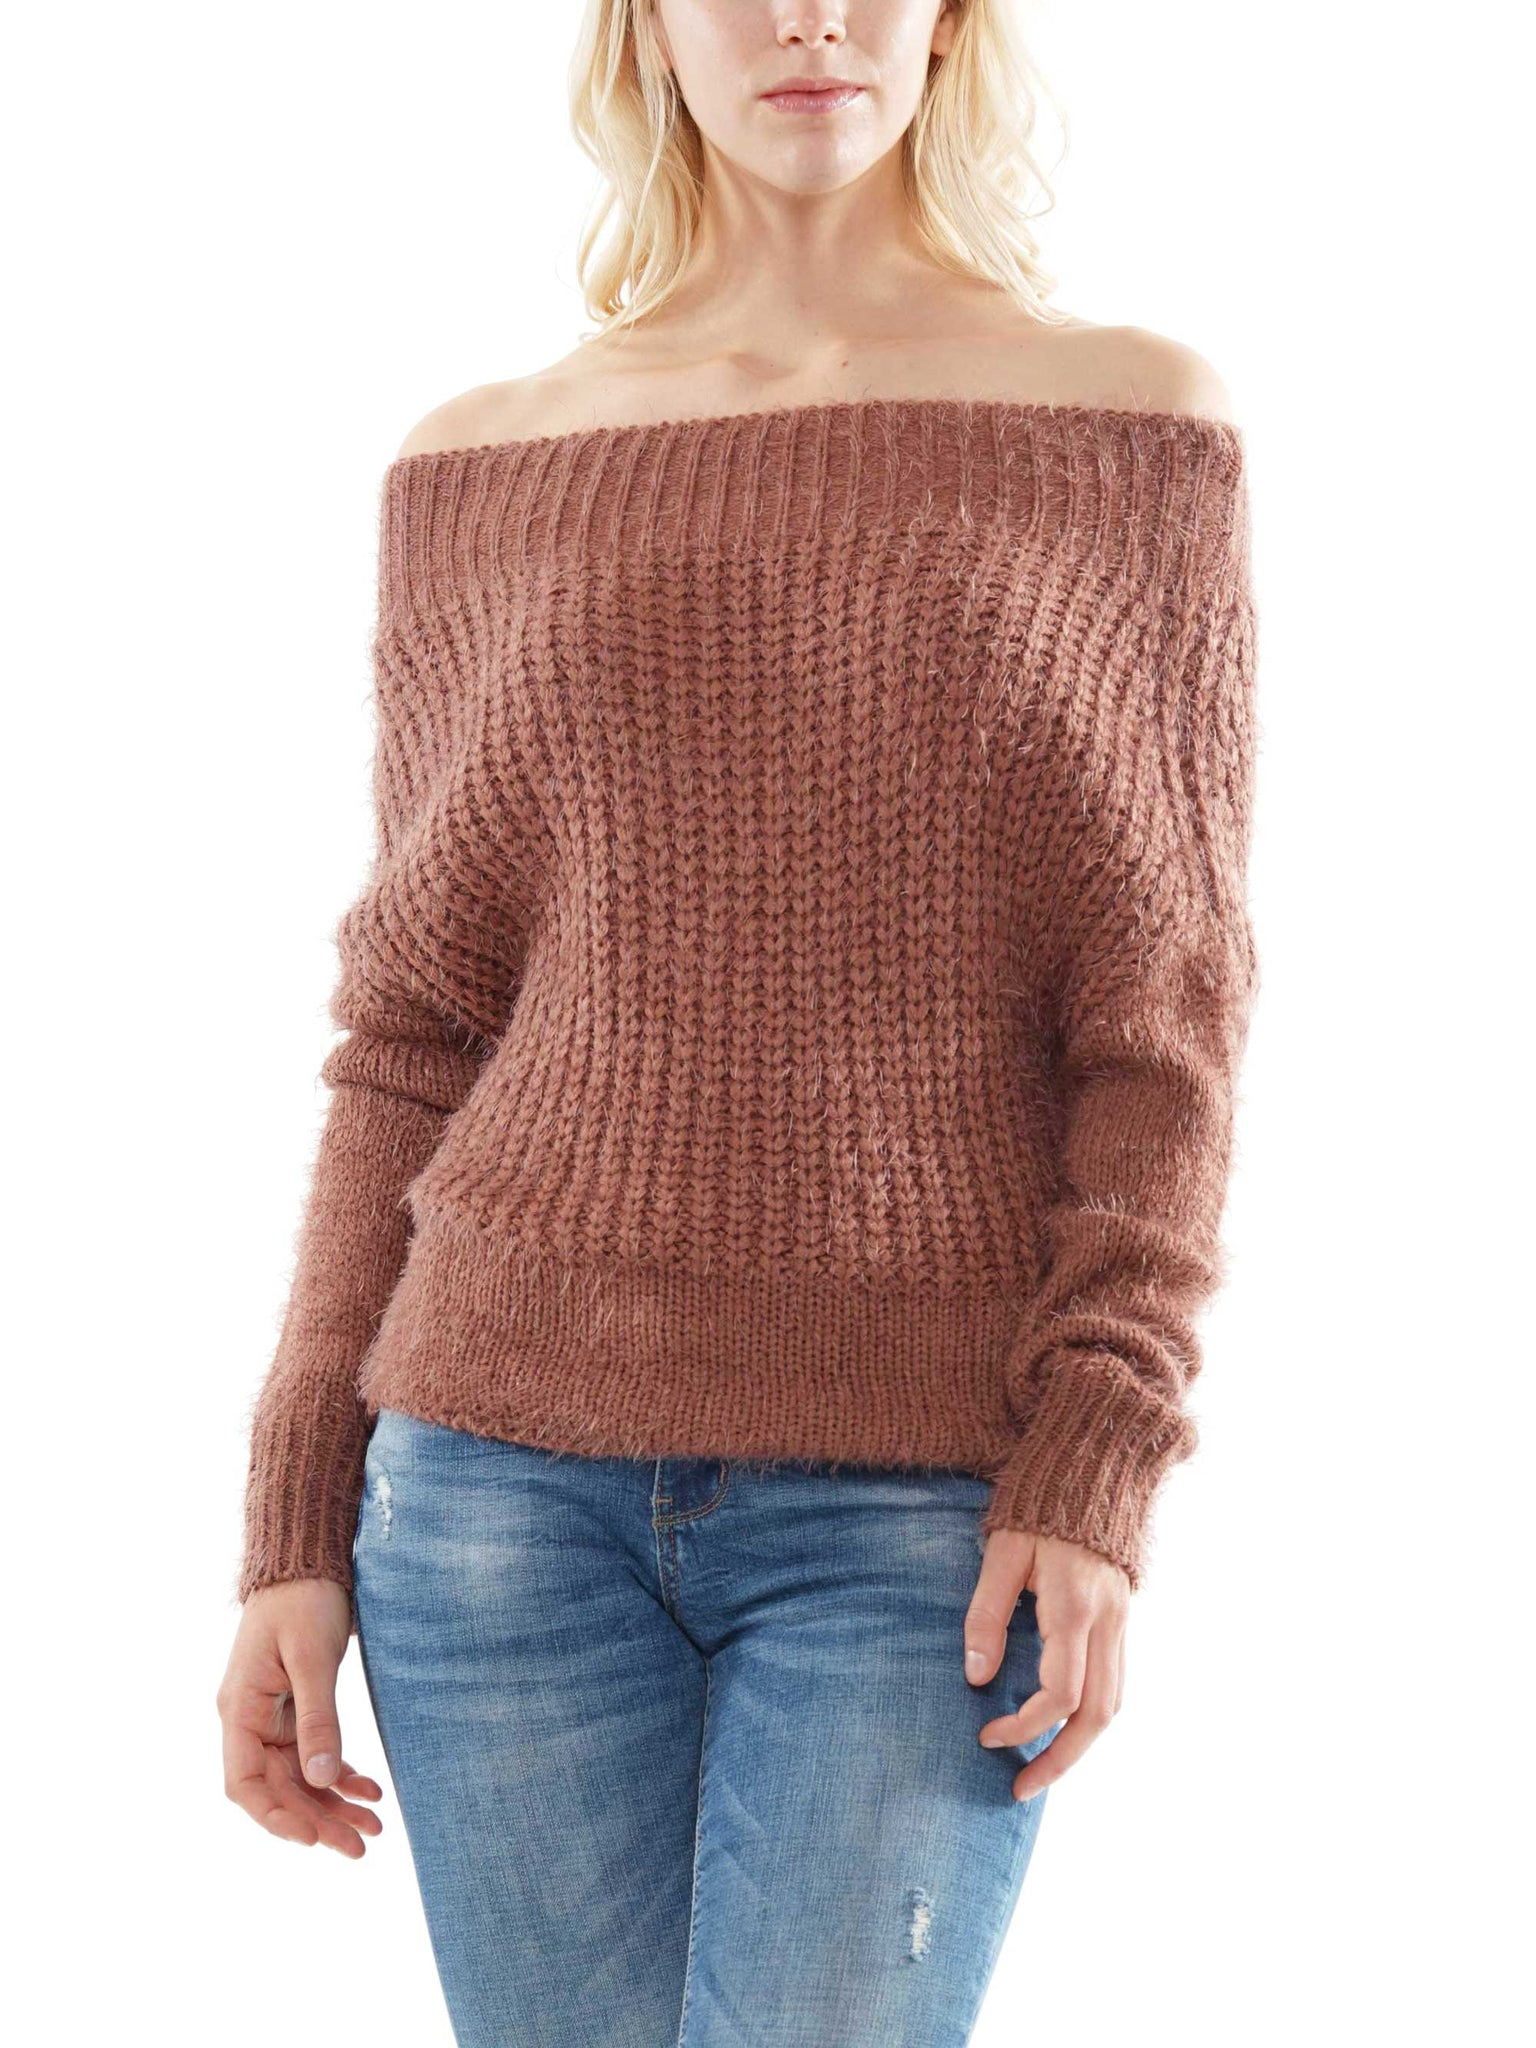 Off-shoulder sweater